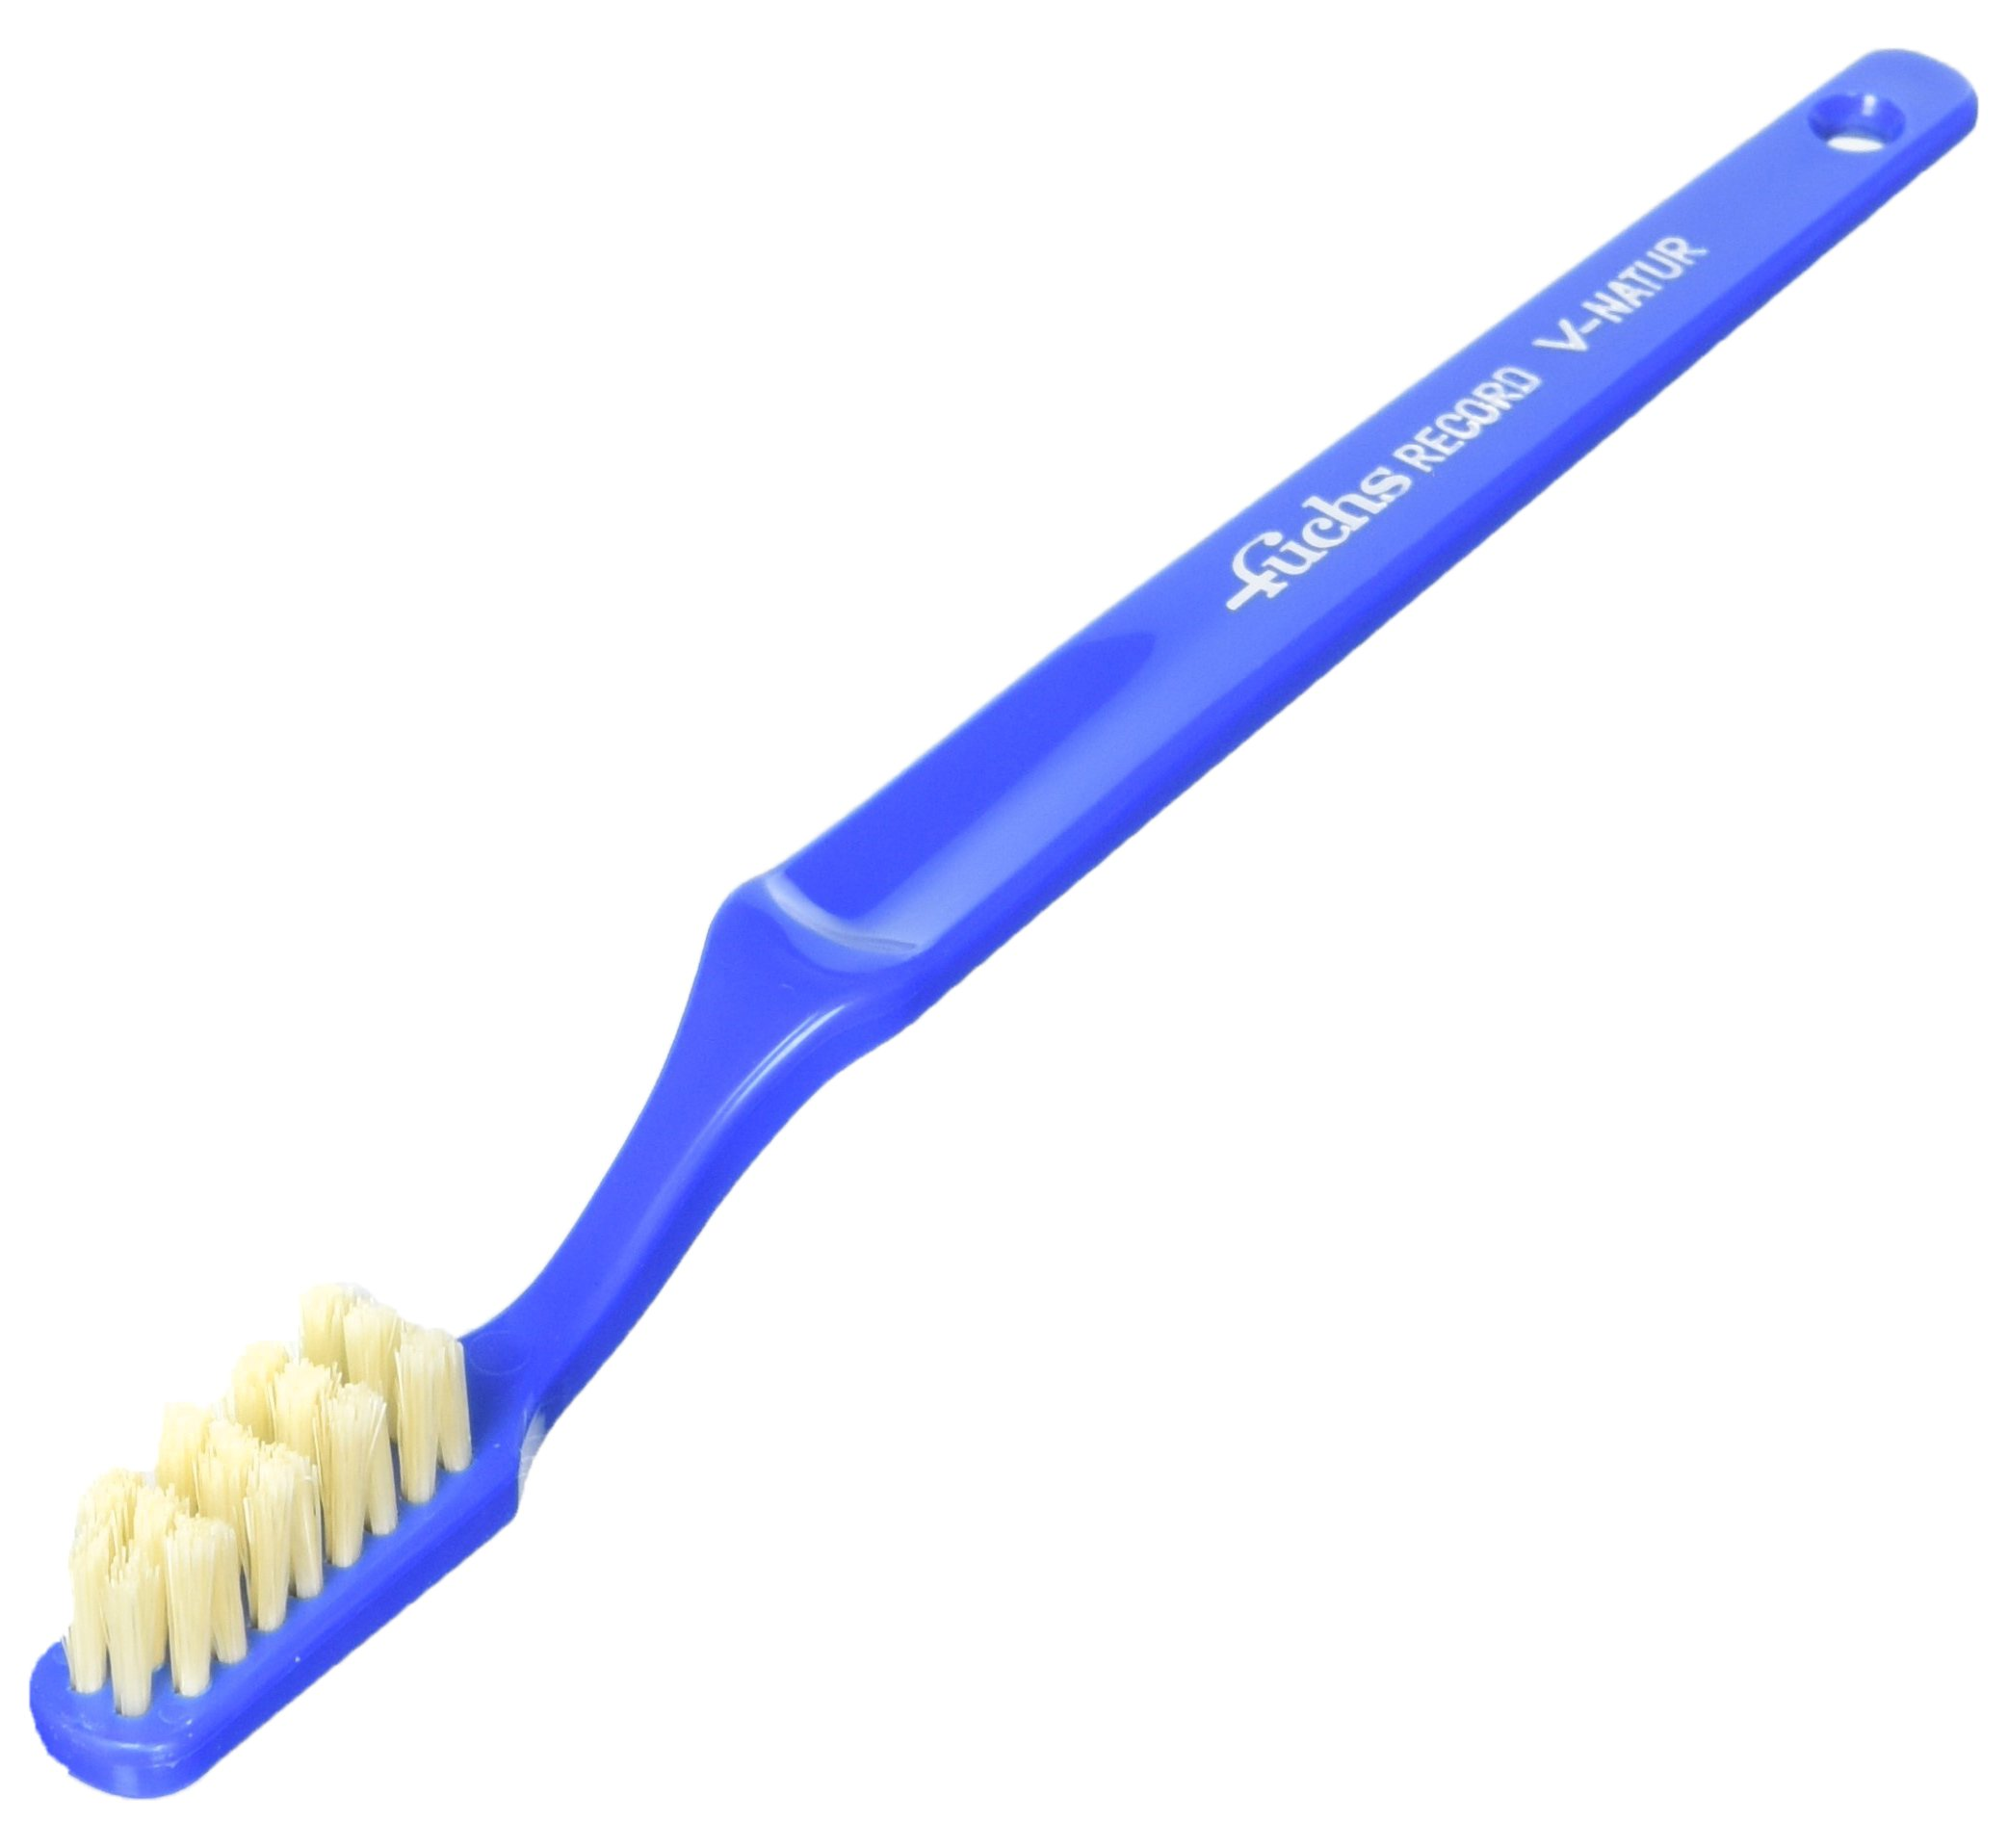 Fuchs Brushes Toothbrushes Pure Natural Boar Bristle Record V Adult Soft, 5 Count